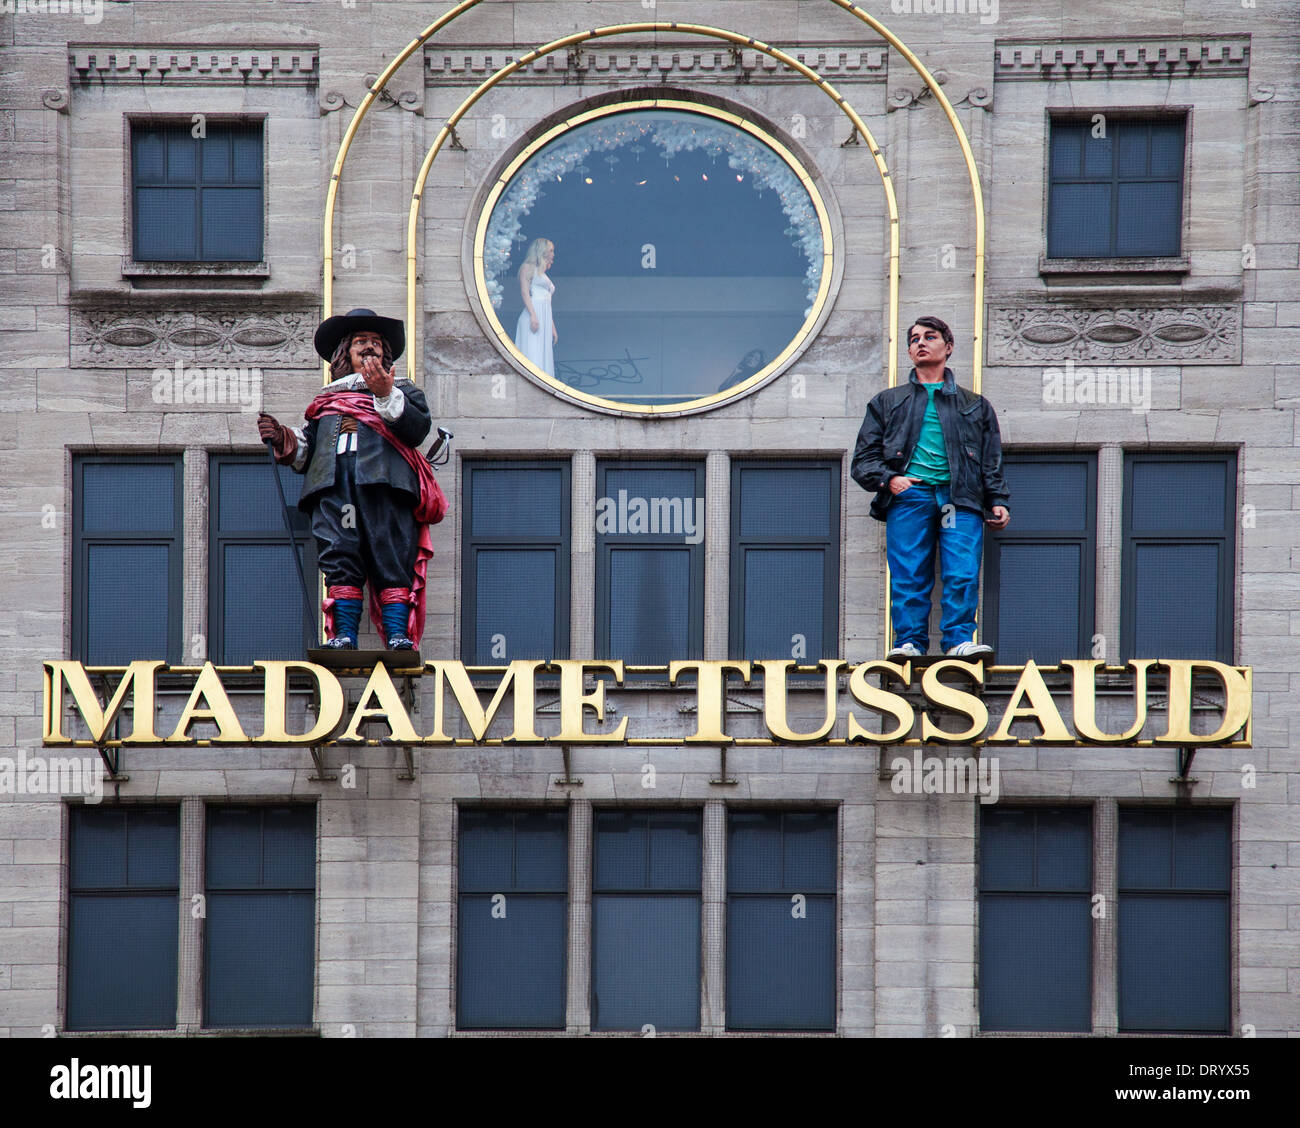 Madame Tussaud wax cabinet in Amsterdam - Stock Image